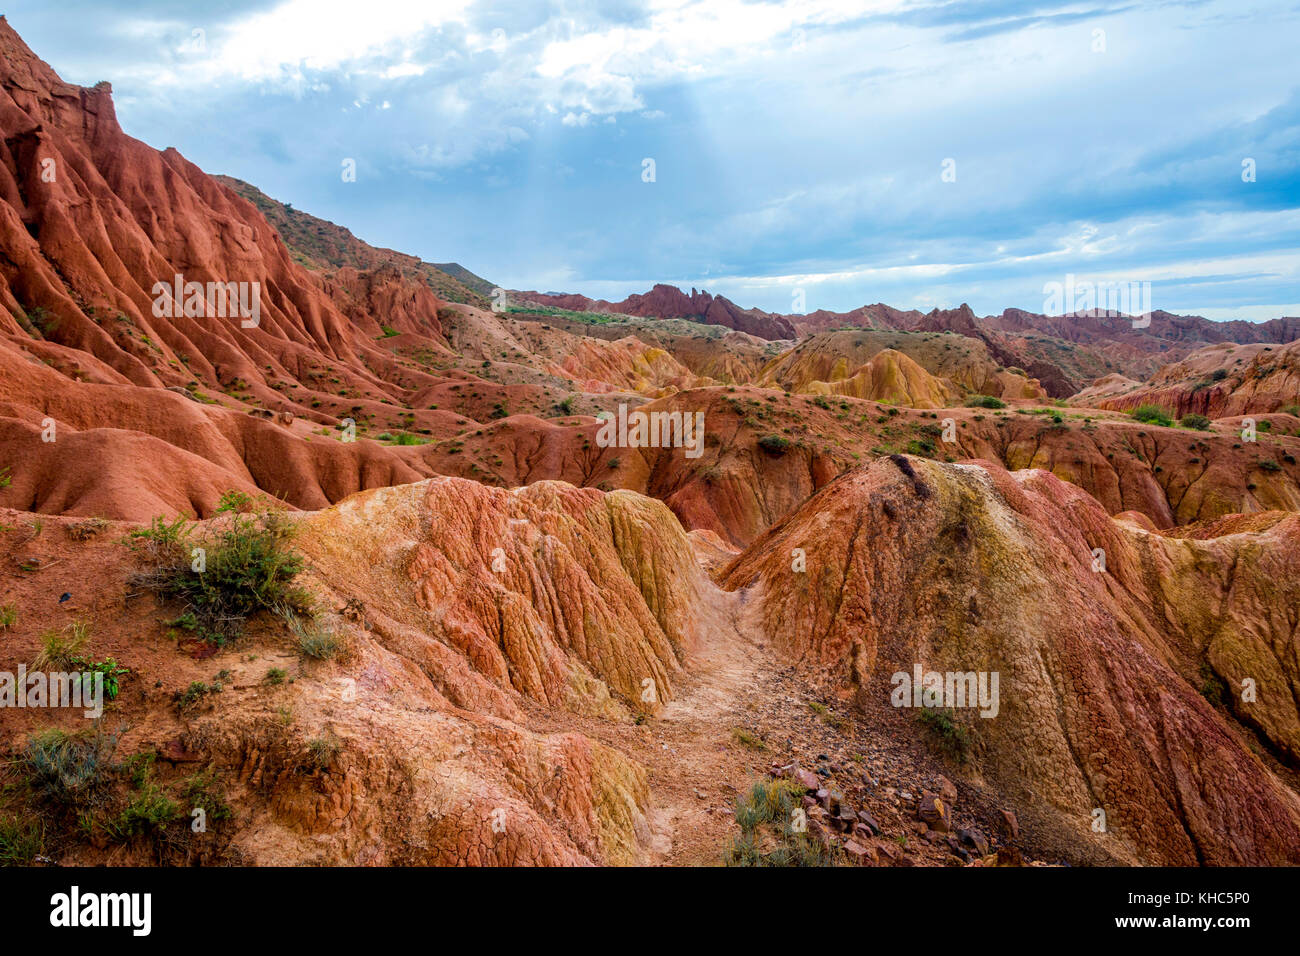 Colorful rock formations in Skazka aka Fairy tale canyon, Kyrgyzstan Stock Photo